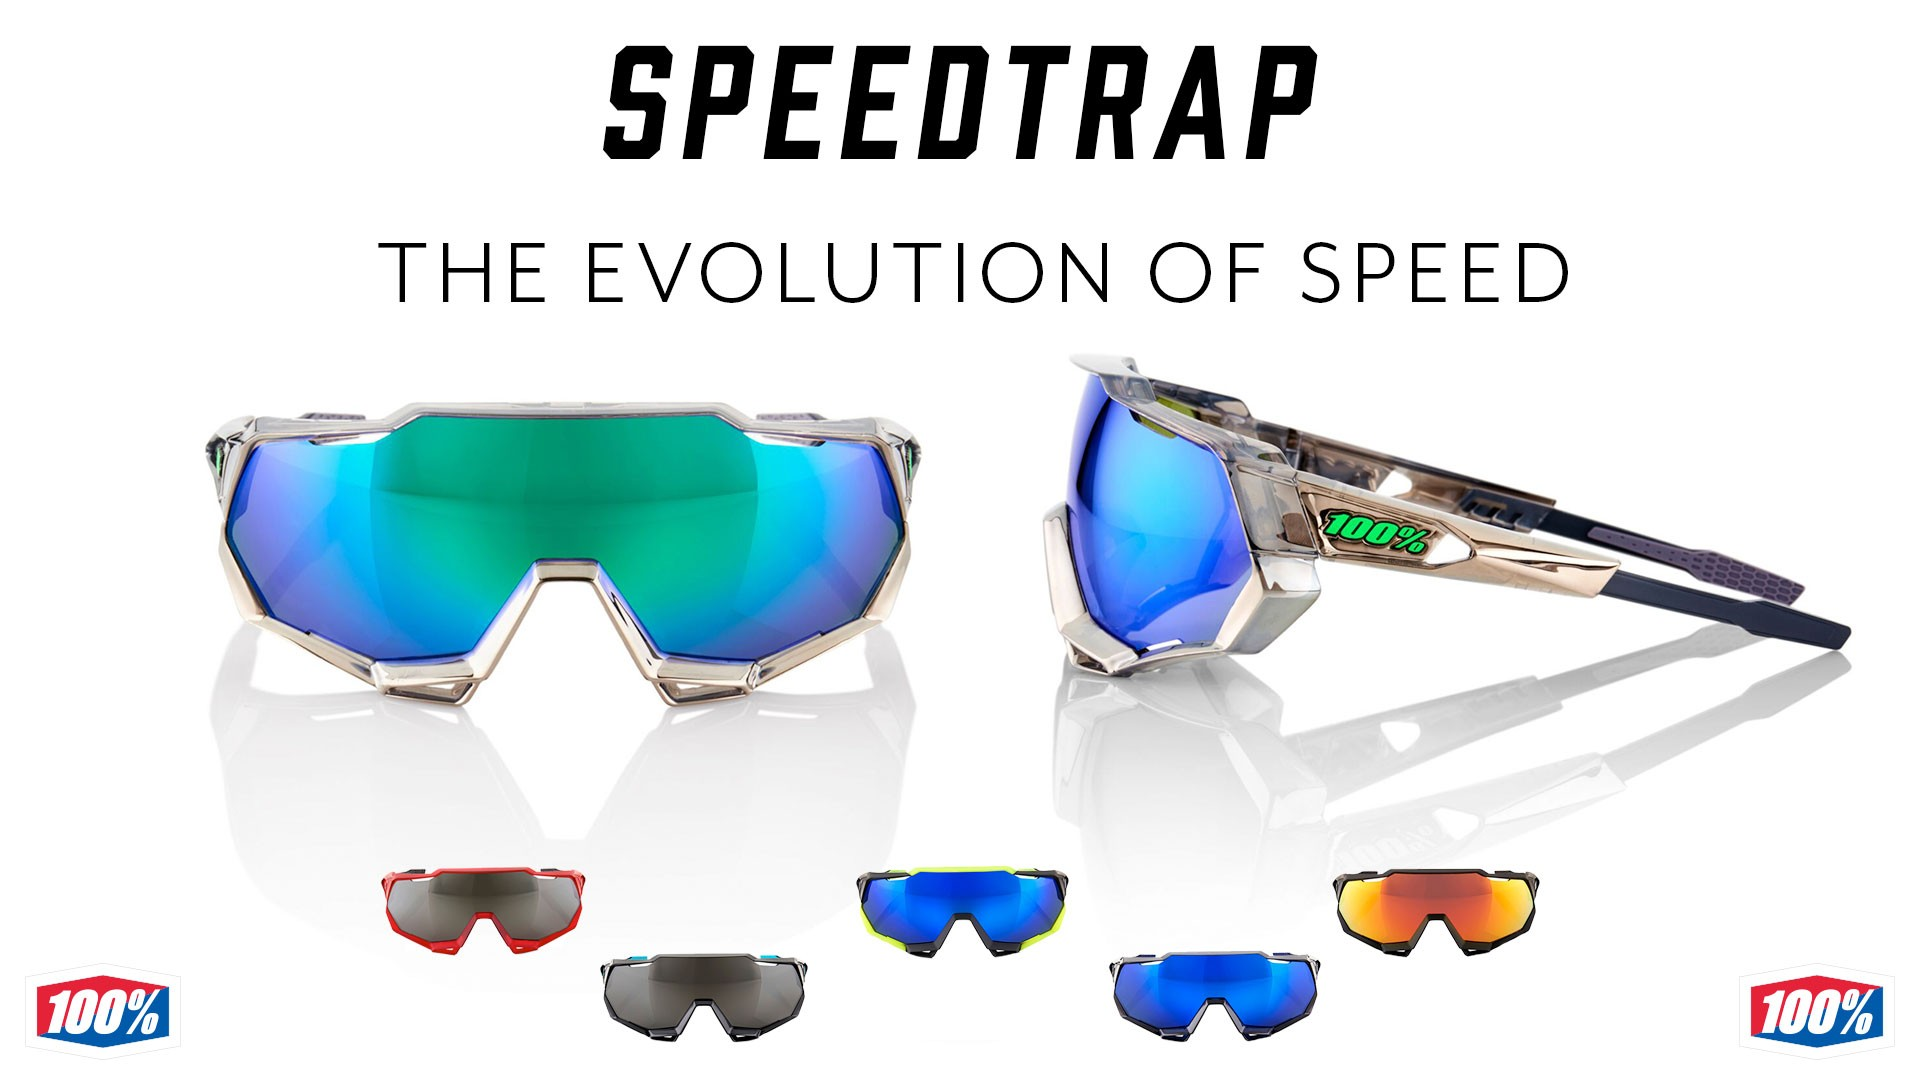 THE EVOLUTION OF SPEED